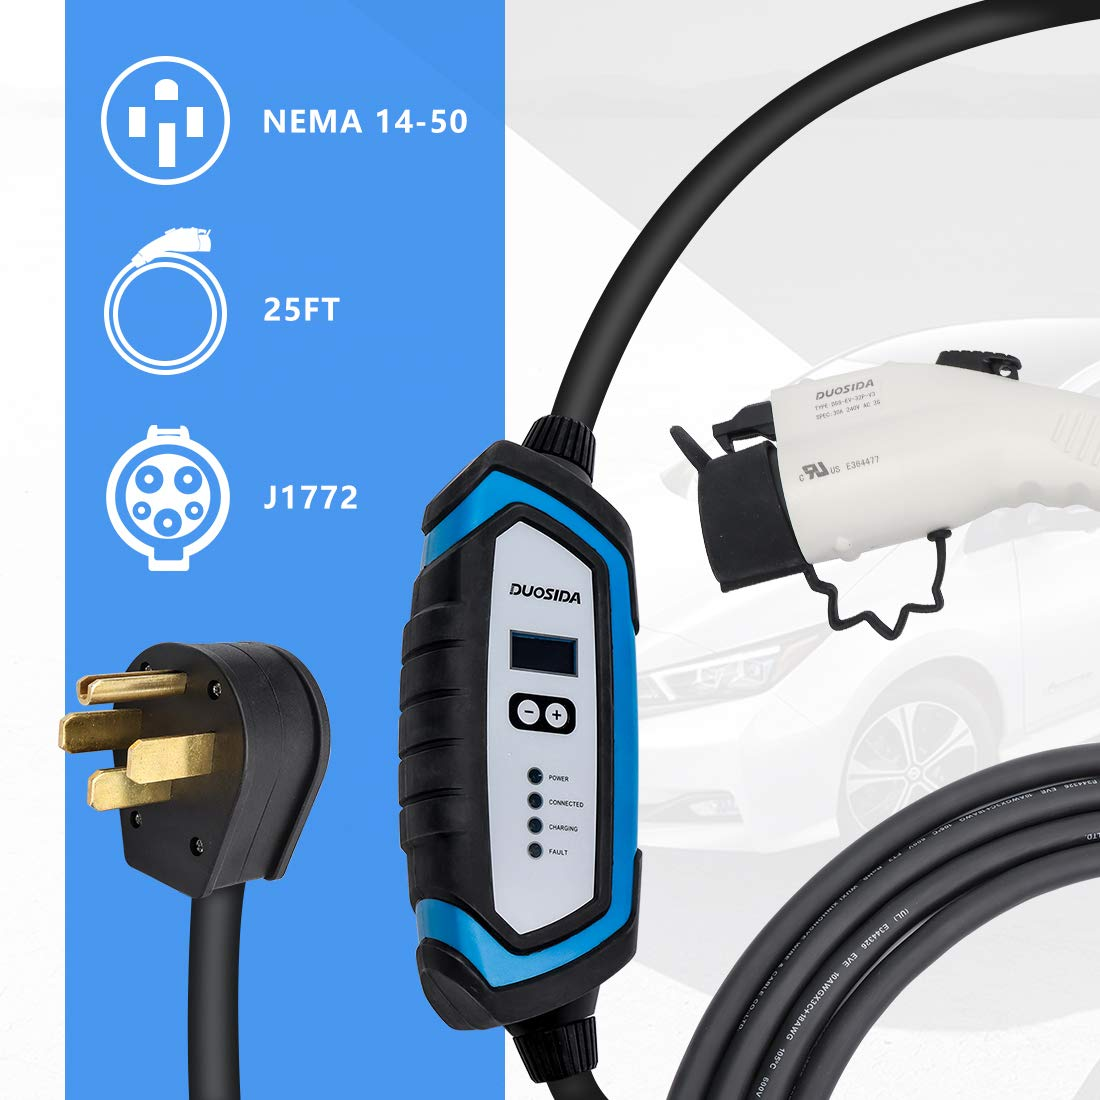 BougeRV Level 2 EV Charger (240V, 32A, 25FT) Portable EV Charging Cable EVSE Electric Vehicle Charger with NEMA 14-50P for Chevy Volt, BMW, Nissan Leaf, Fiat, Ford Fusion, Toyota Prius Prime by BougeRV (Image #4)